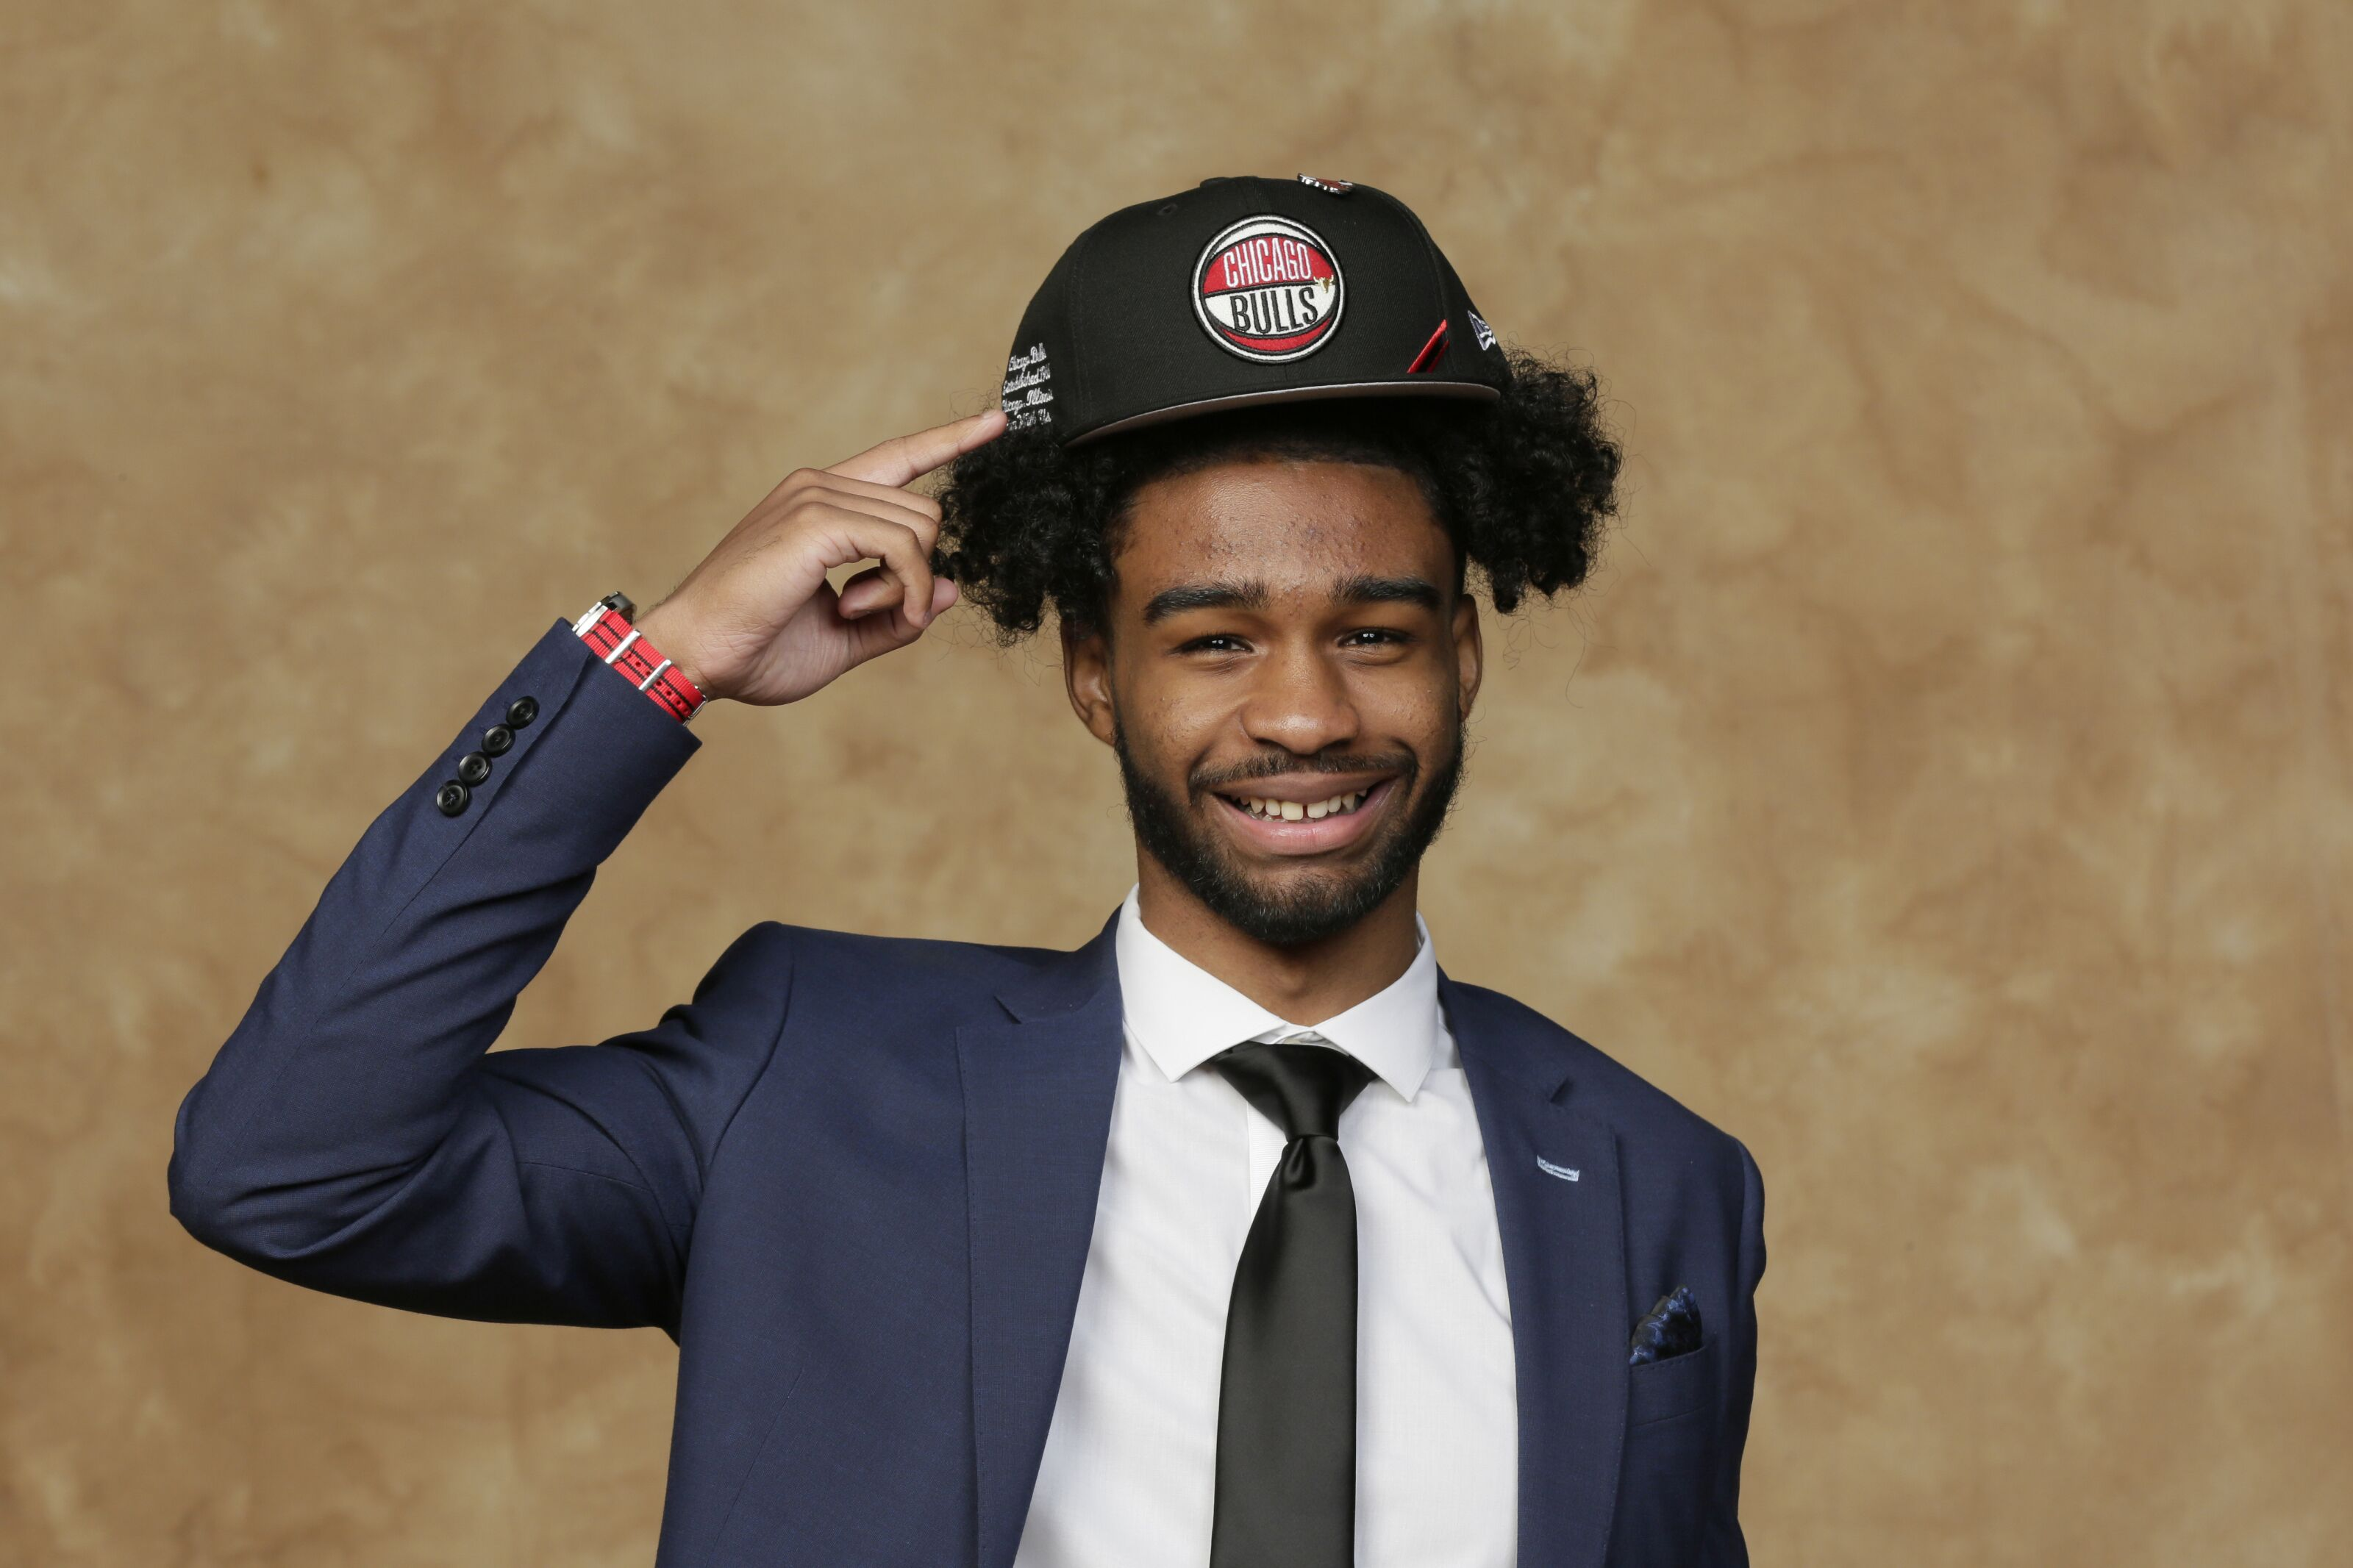 Chicago Bulls: What drafting speedy PG Coby White means